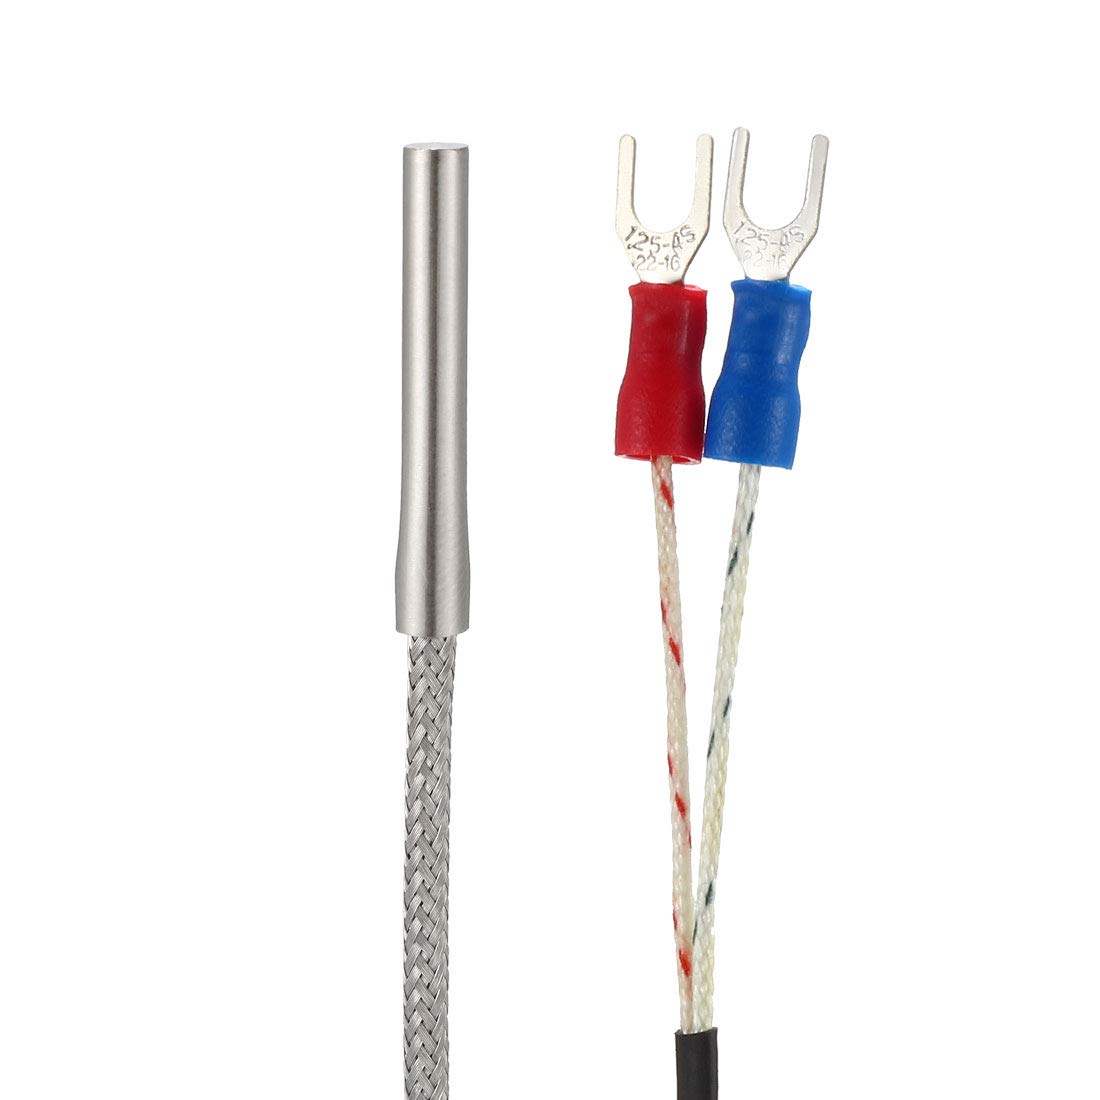 3.3ft sourcing map Thermocouple Temperature Probe Sensor 0 to 400C